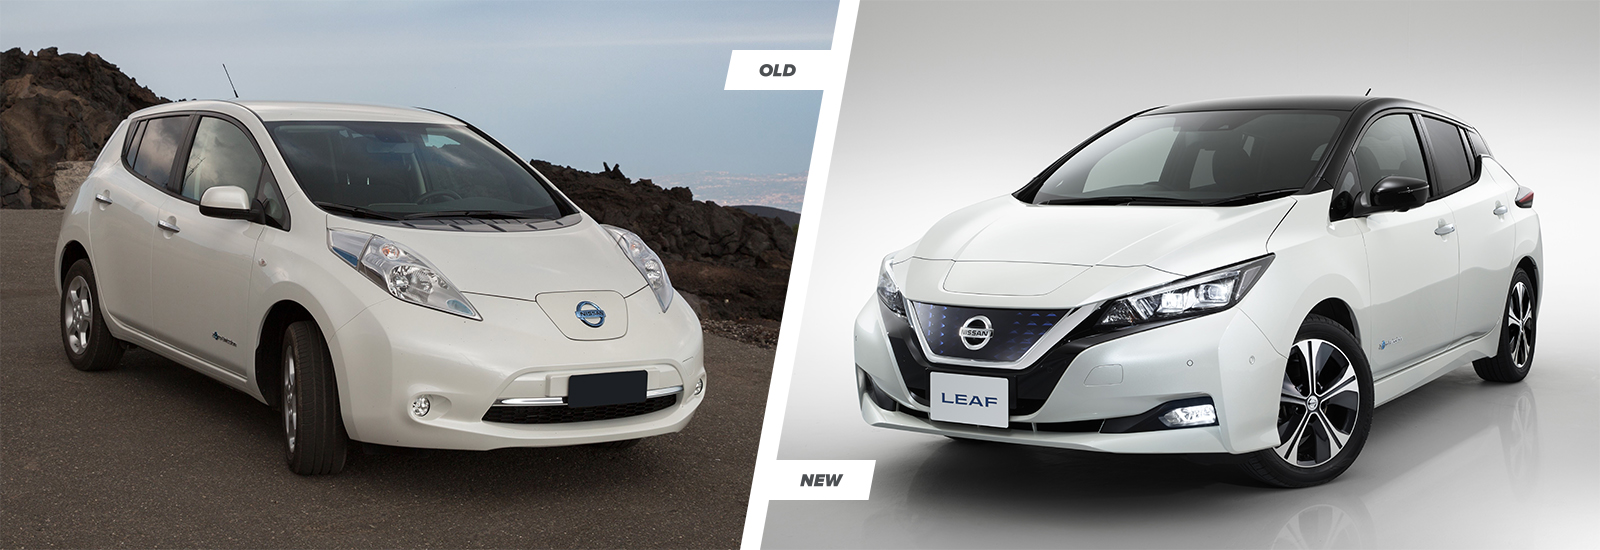 2018 nissan leaf specs. exellent leaf gone too is the deliberately strange body shape u2013 new car looks more  conventional to give it wider appeal the roof finished in a contrasting  throughout 2018 nissan leaf specs